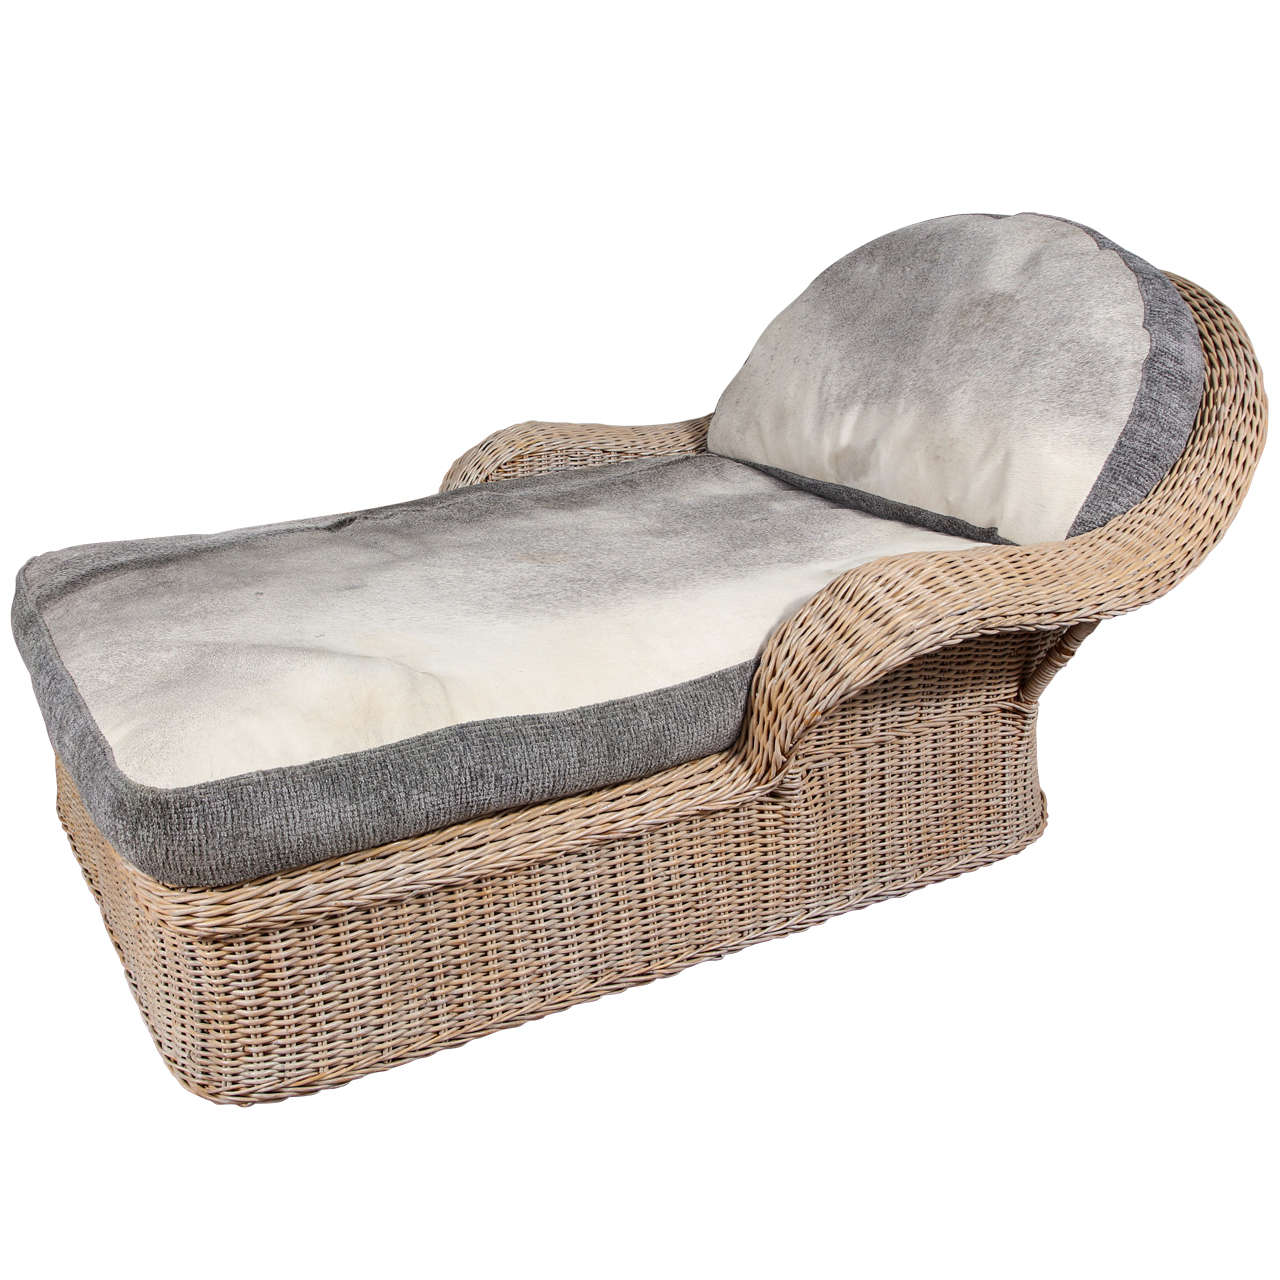 Rattan chaise with cowhide upholstery at 1stdibs